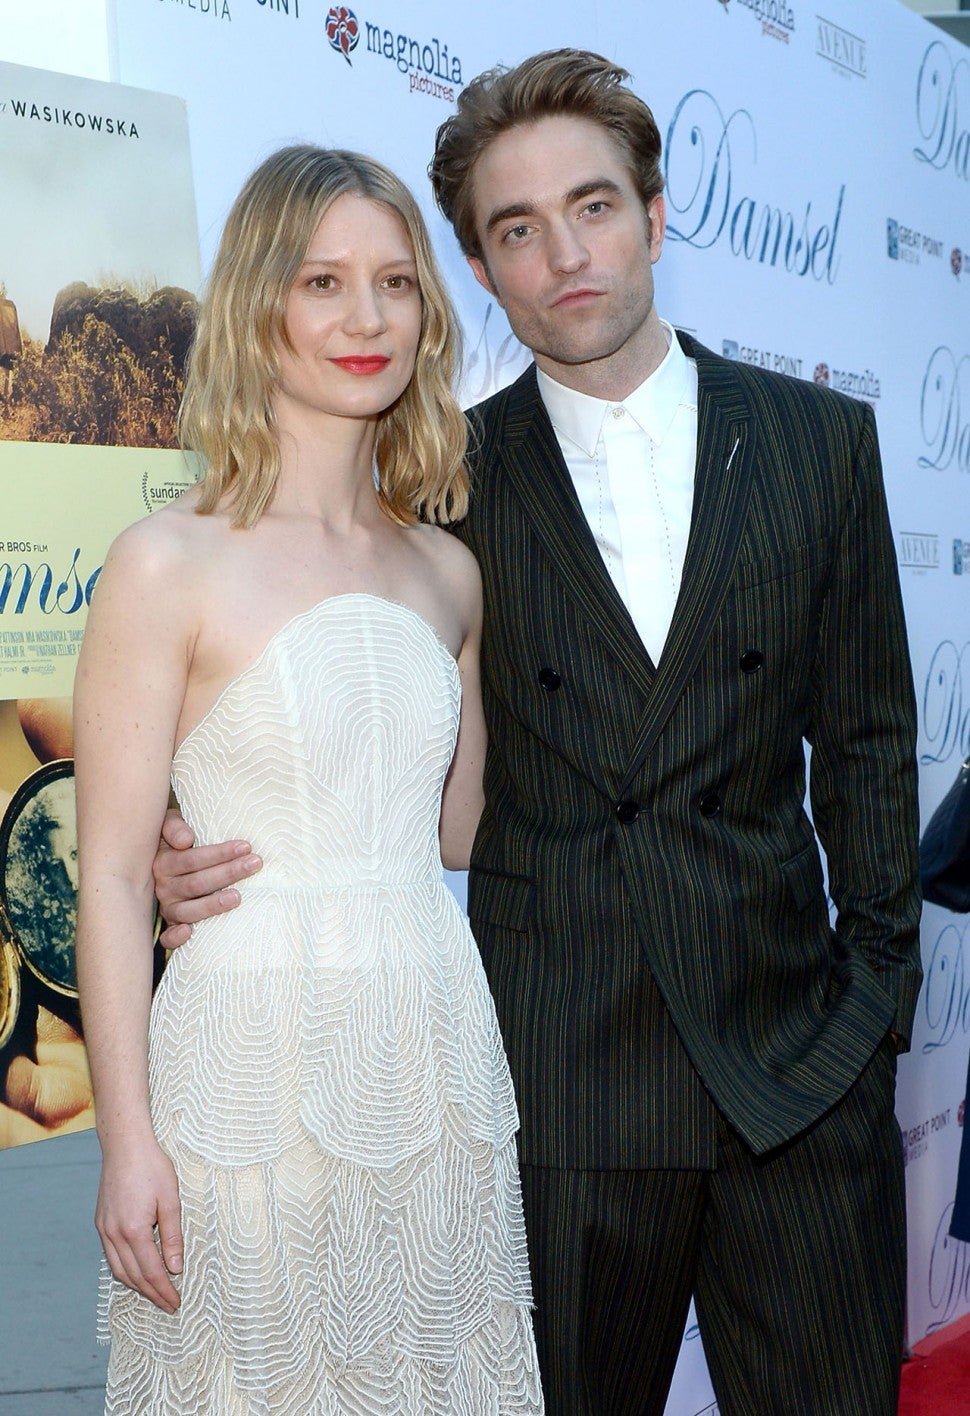 Mia Wasikowska and Robert Pattinson